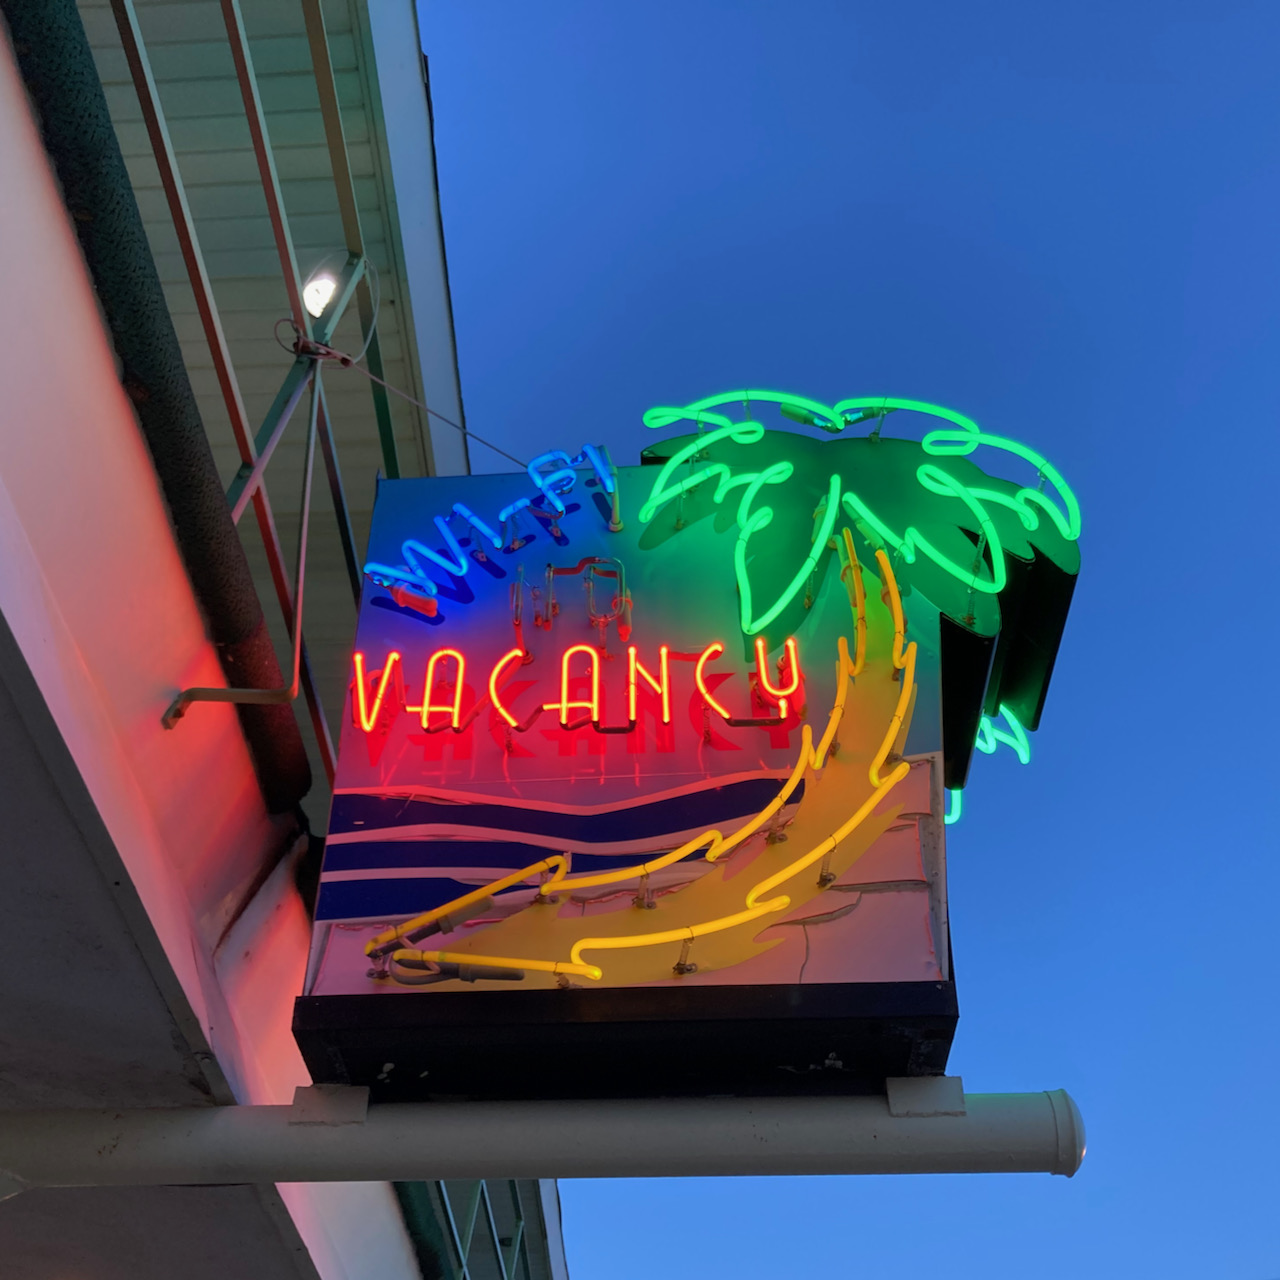 Neon sign advertising vacancy and wifi.